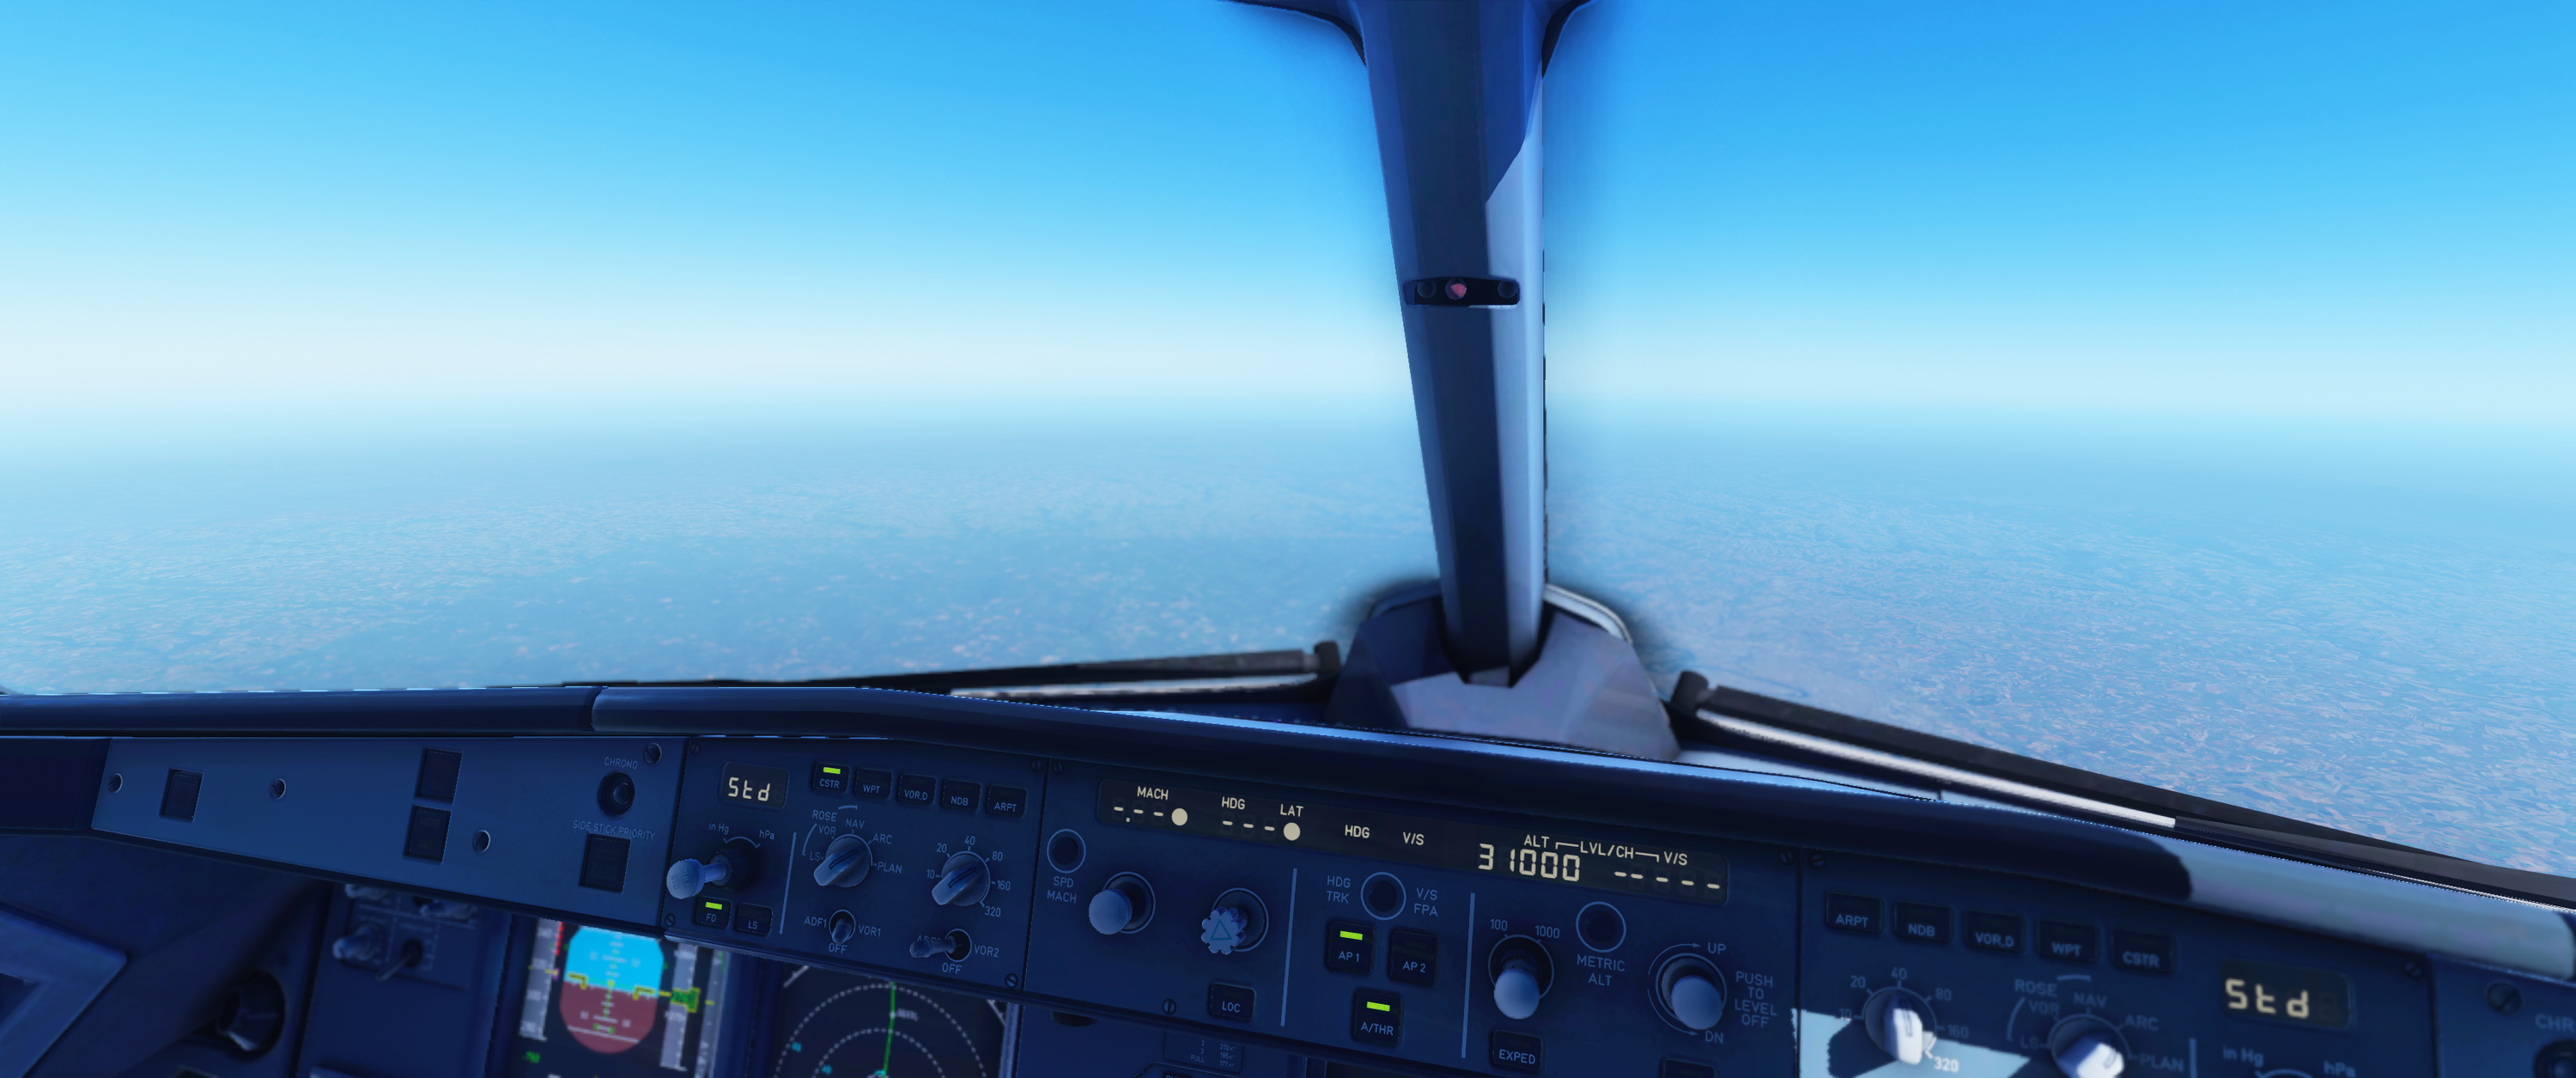 X-Plane Screenshot 2020.03.18 - 15.11.34.56.png